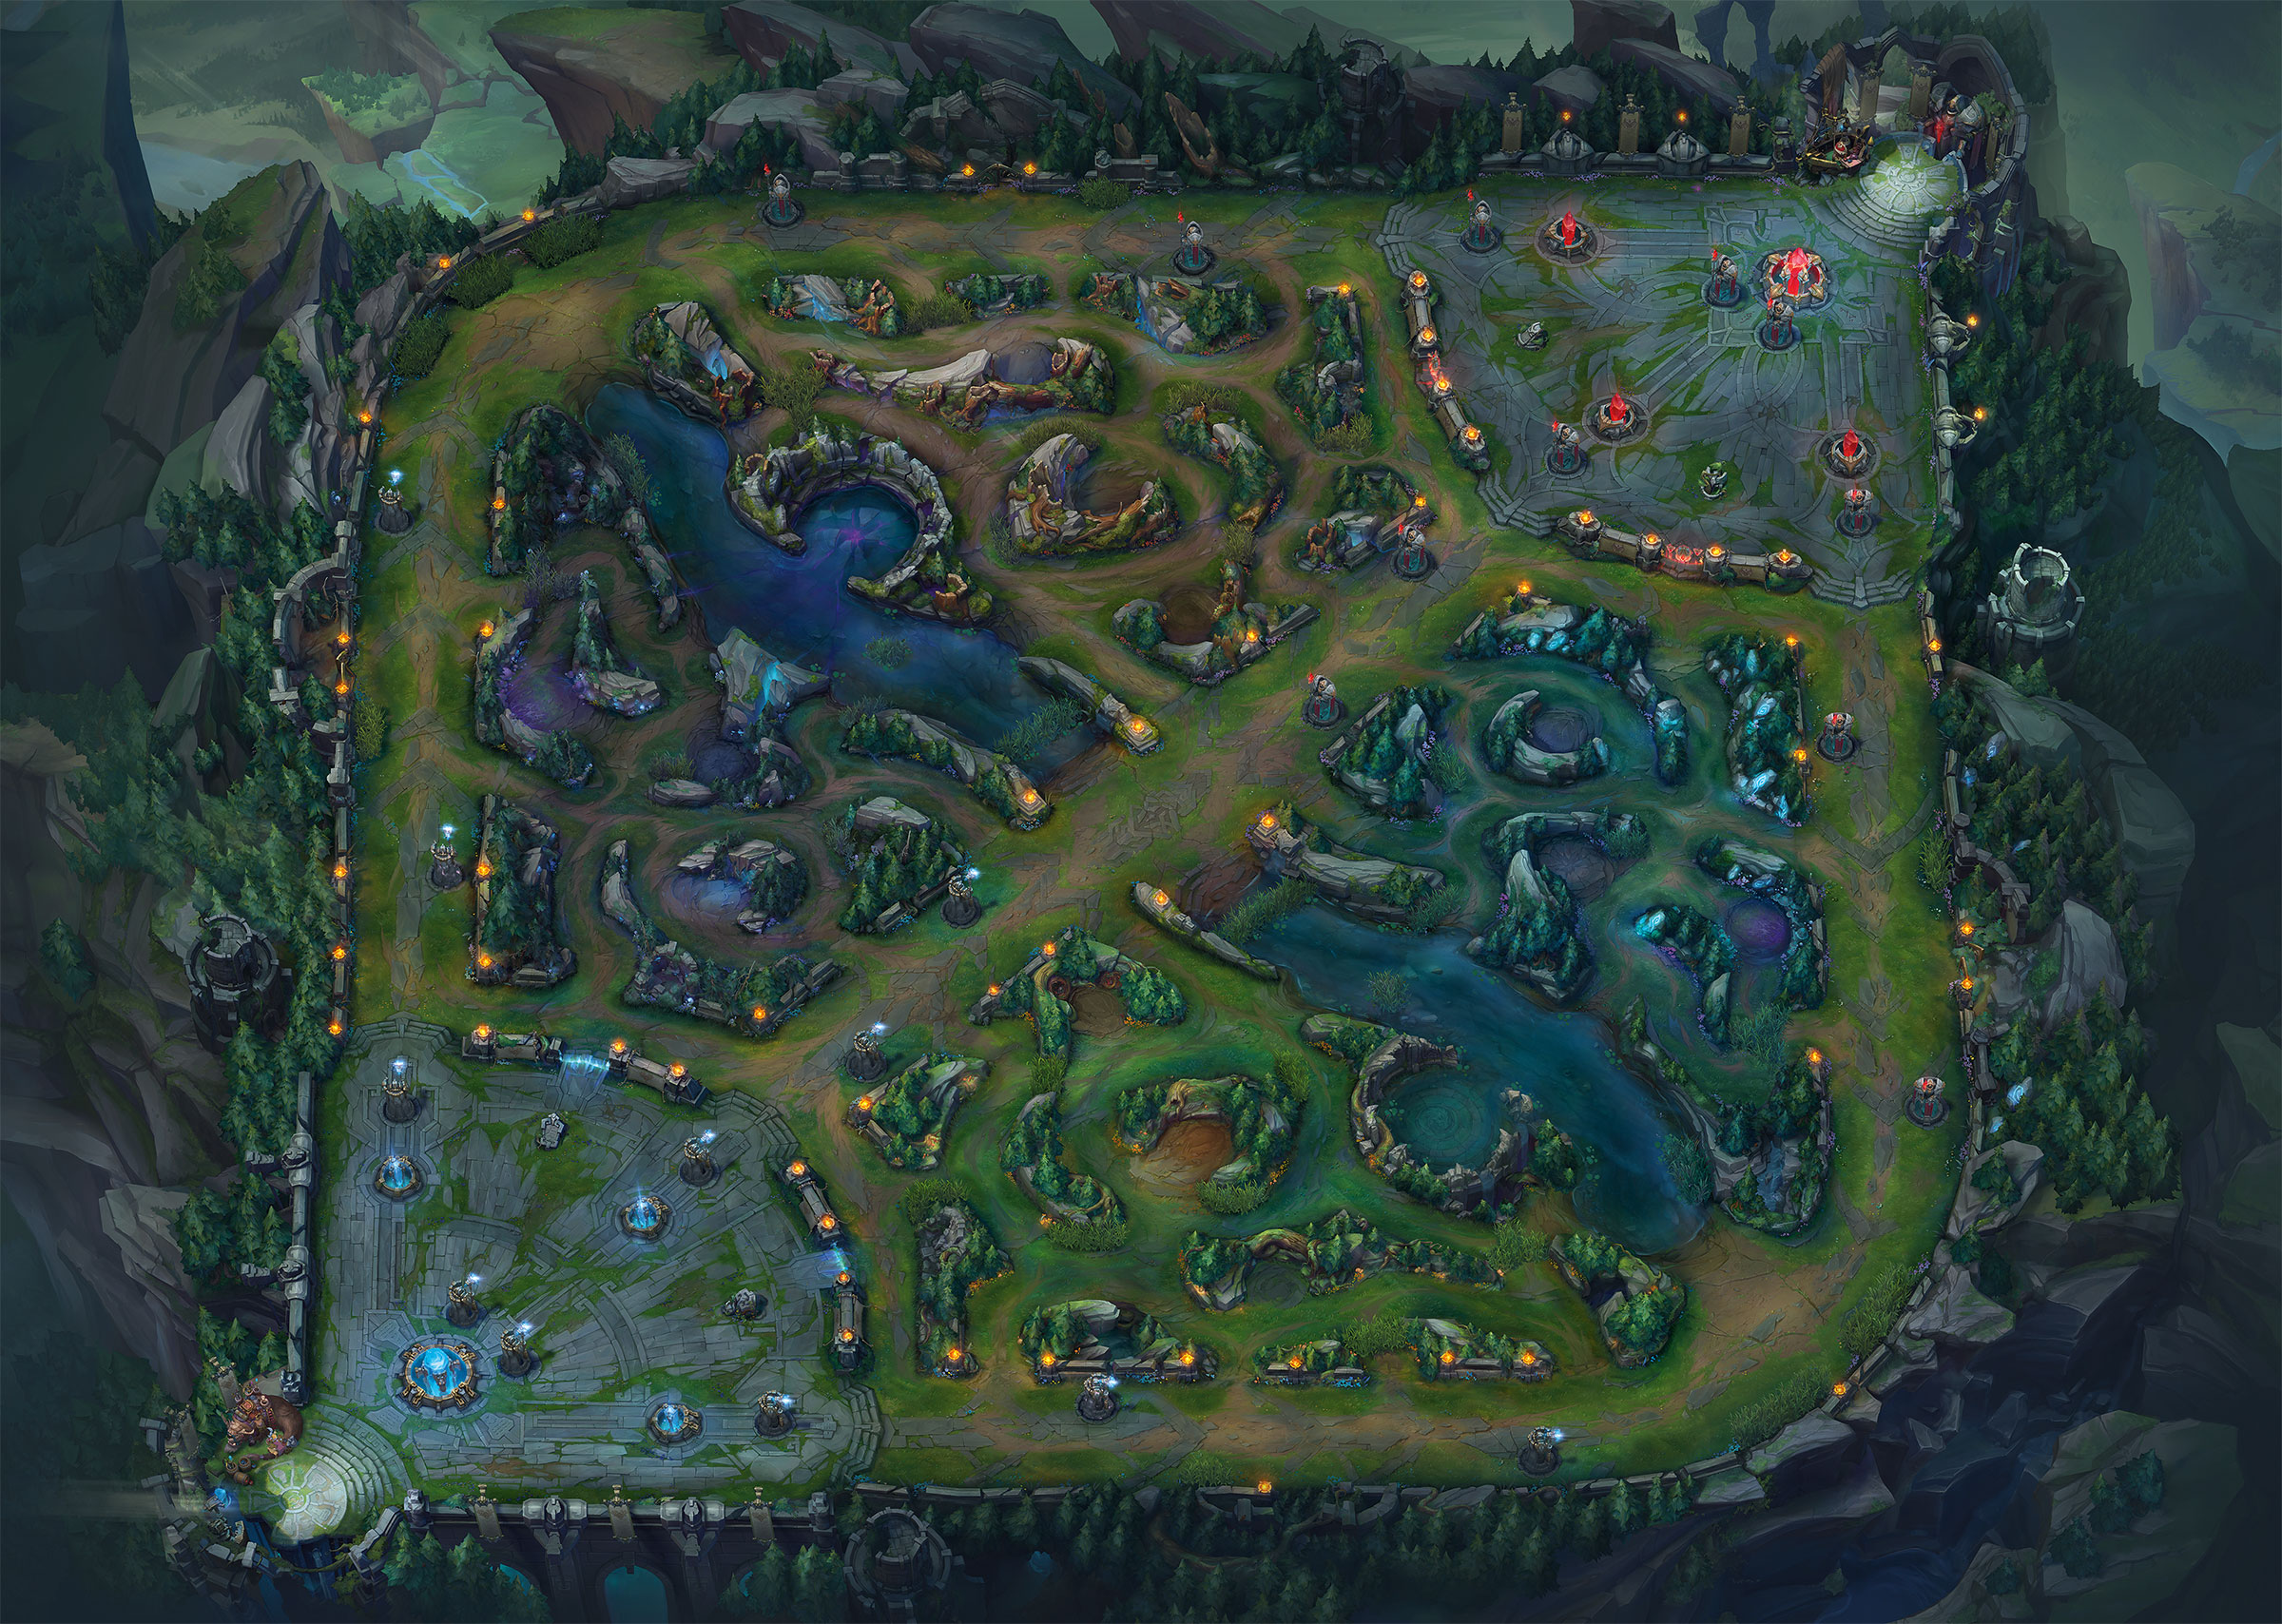 image  summoner's rift update mappng  league of legends wiki  - summoner's rift update mappng